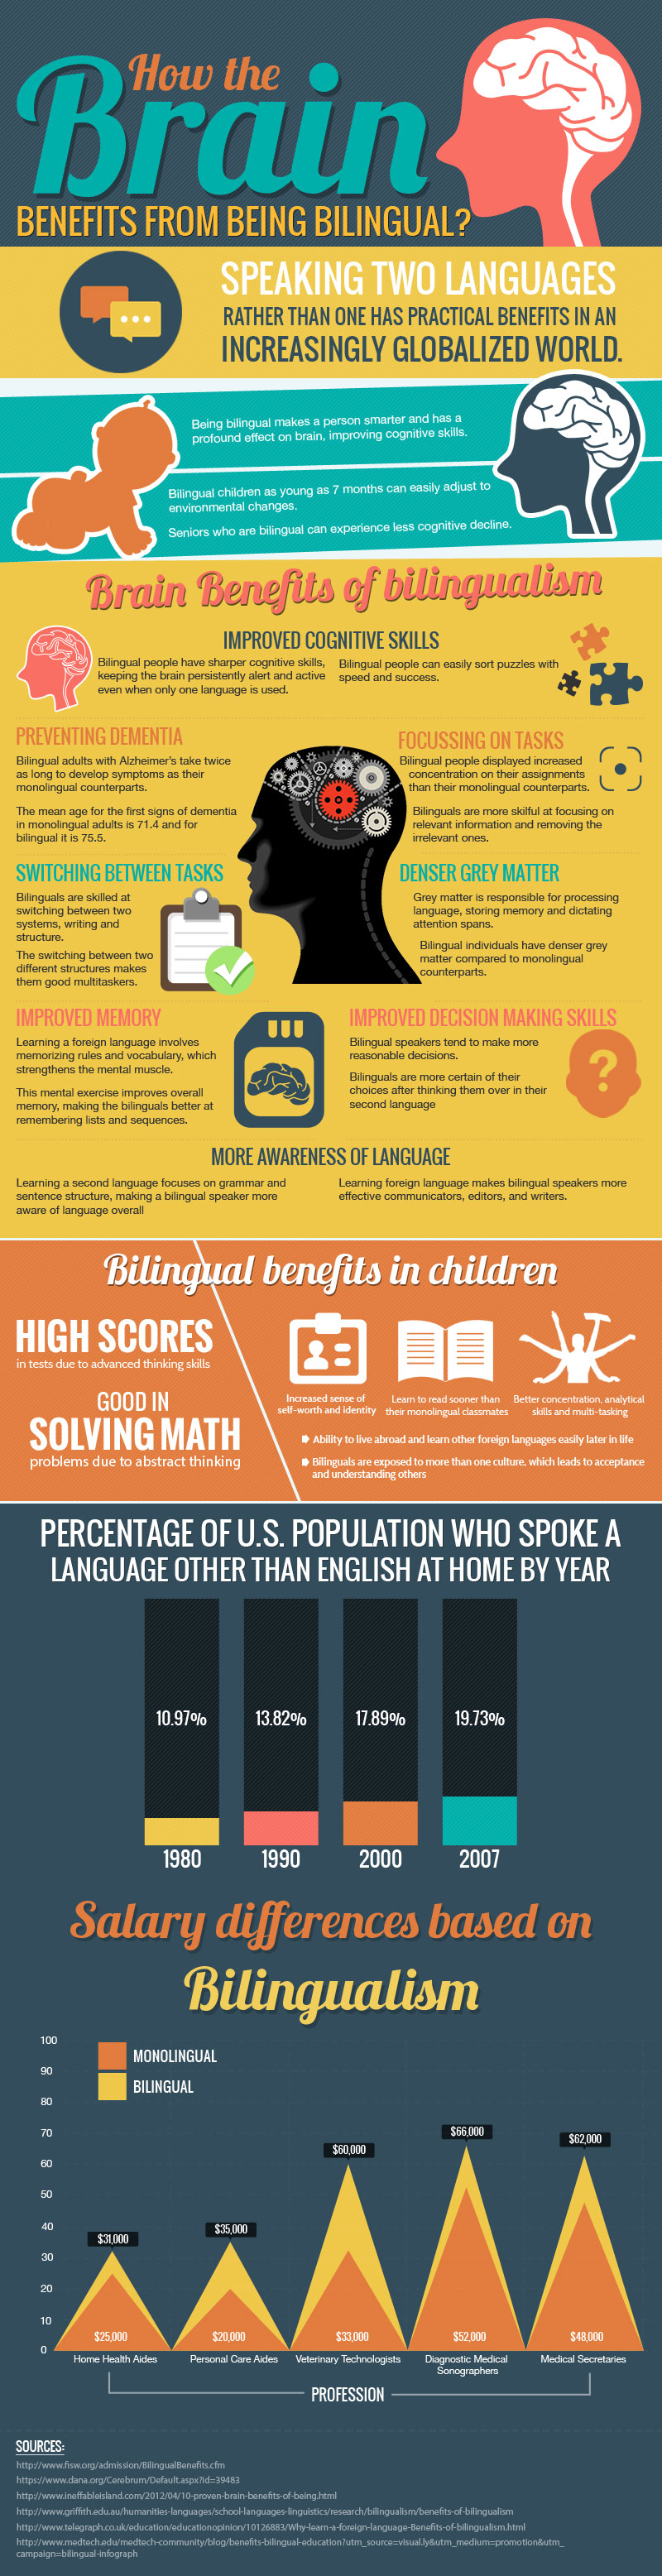 Being bilingual 'boosts brain power' - BBC News